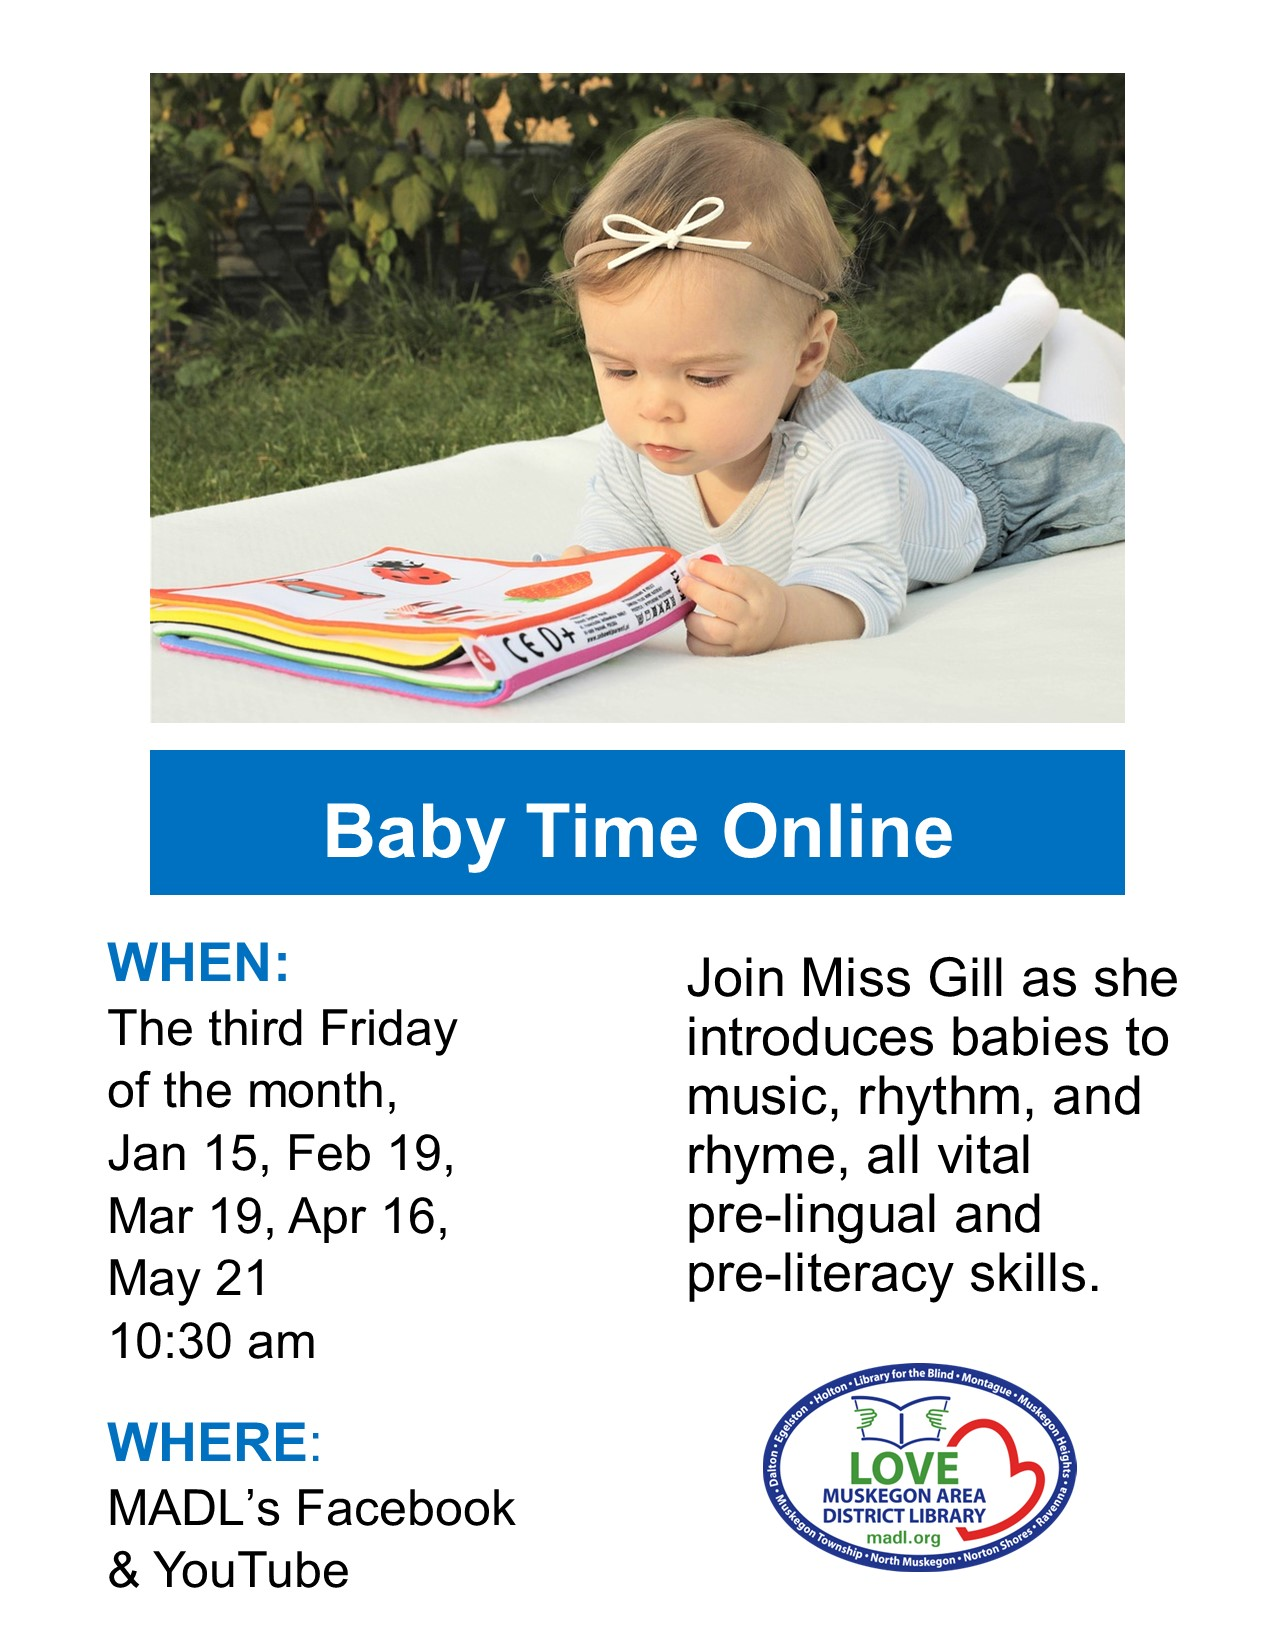 A little baby girl about 8 months old with a bow in her hair laying on her belly looking at a book with caption Baby Time Online.